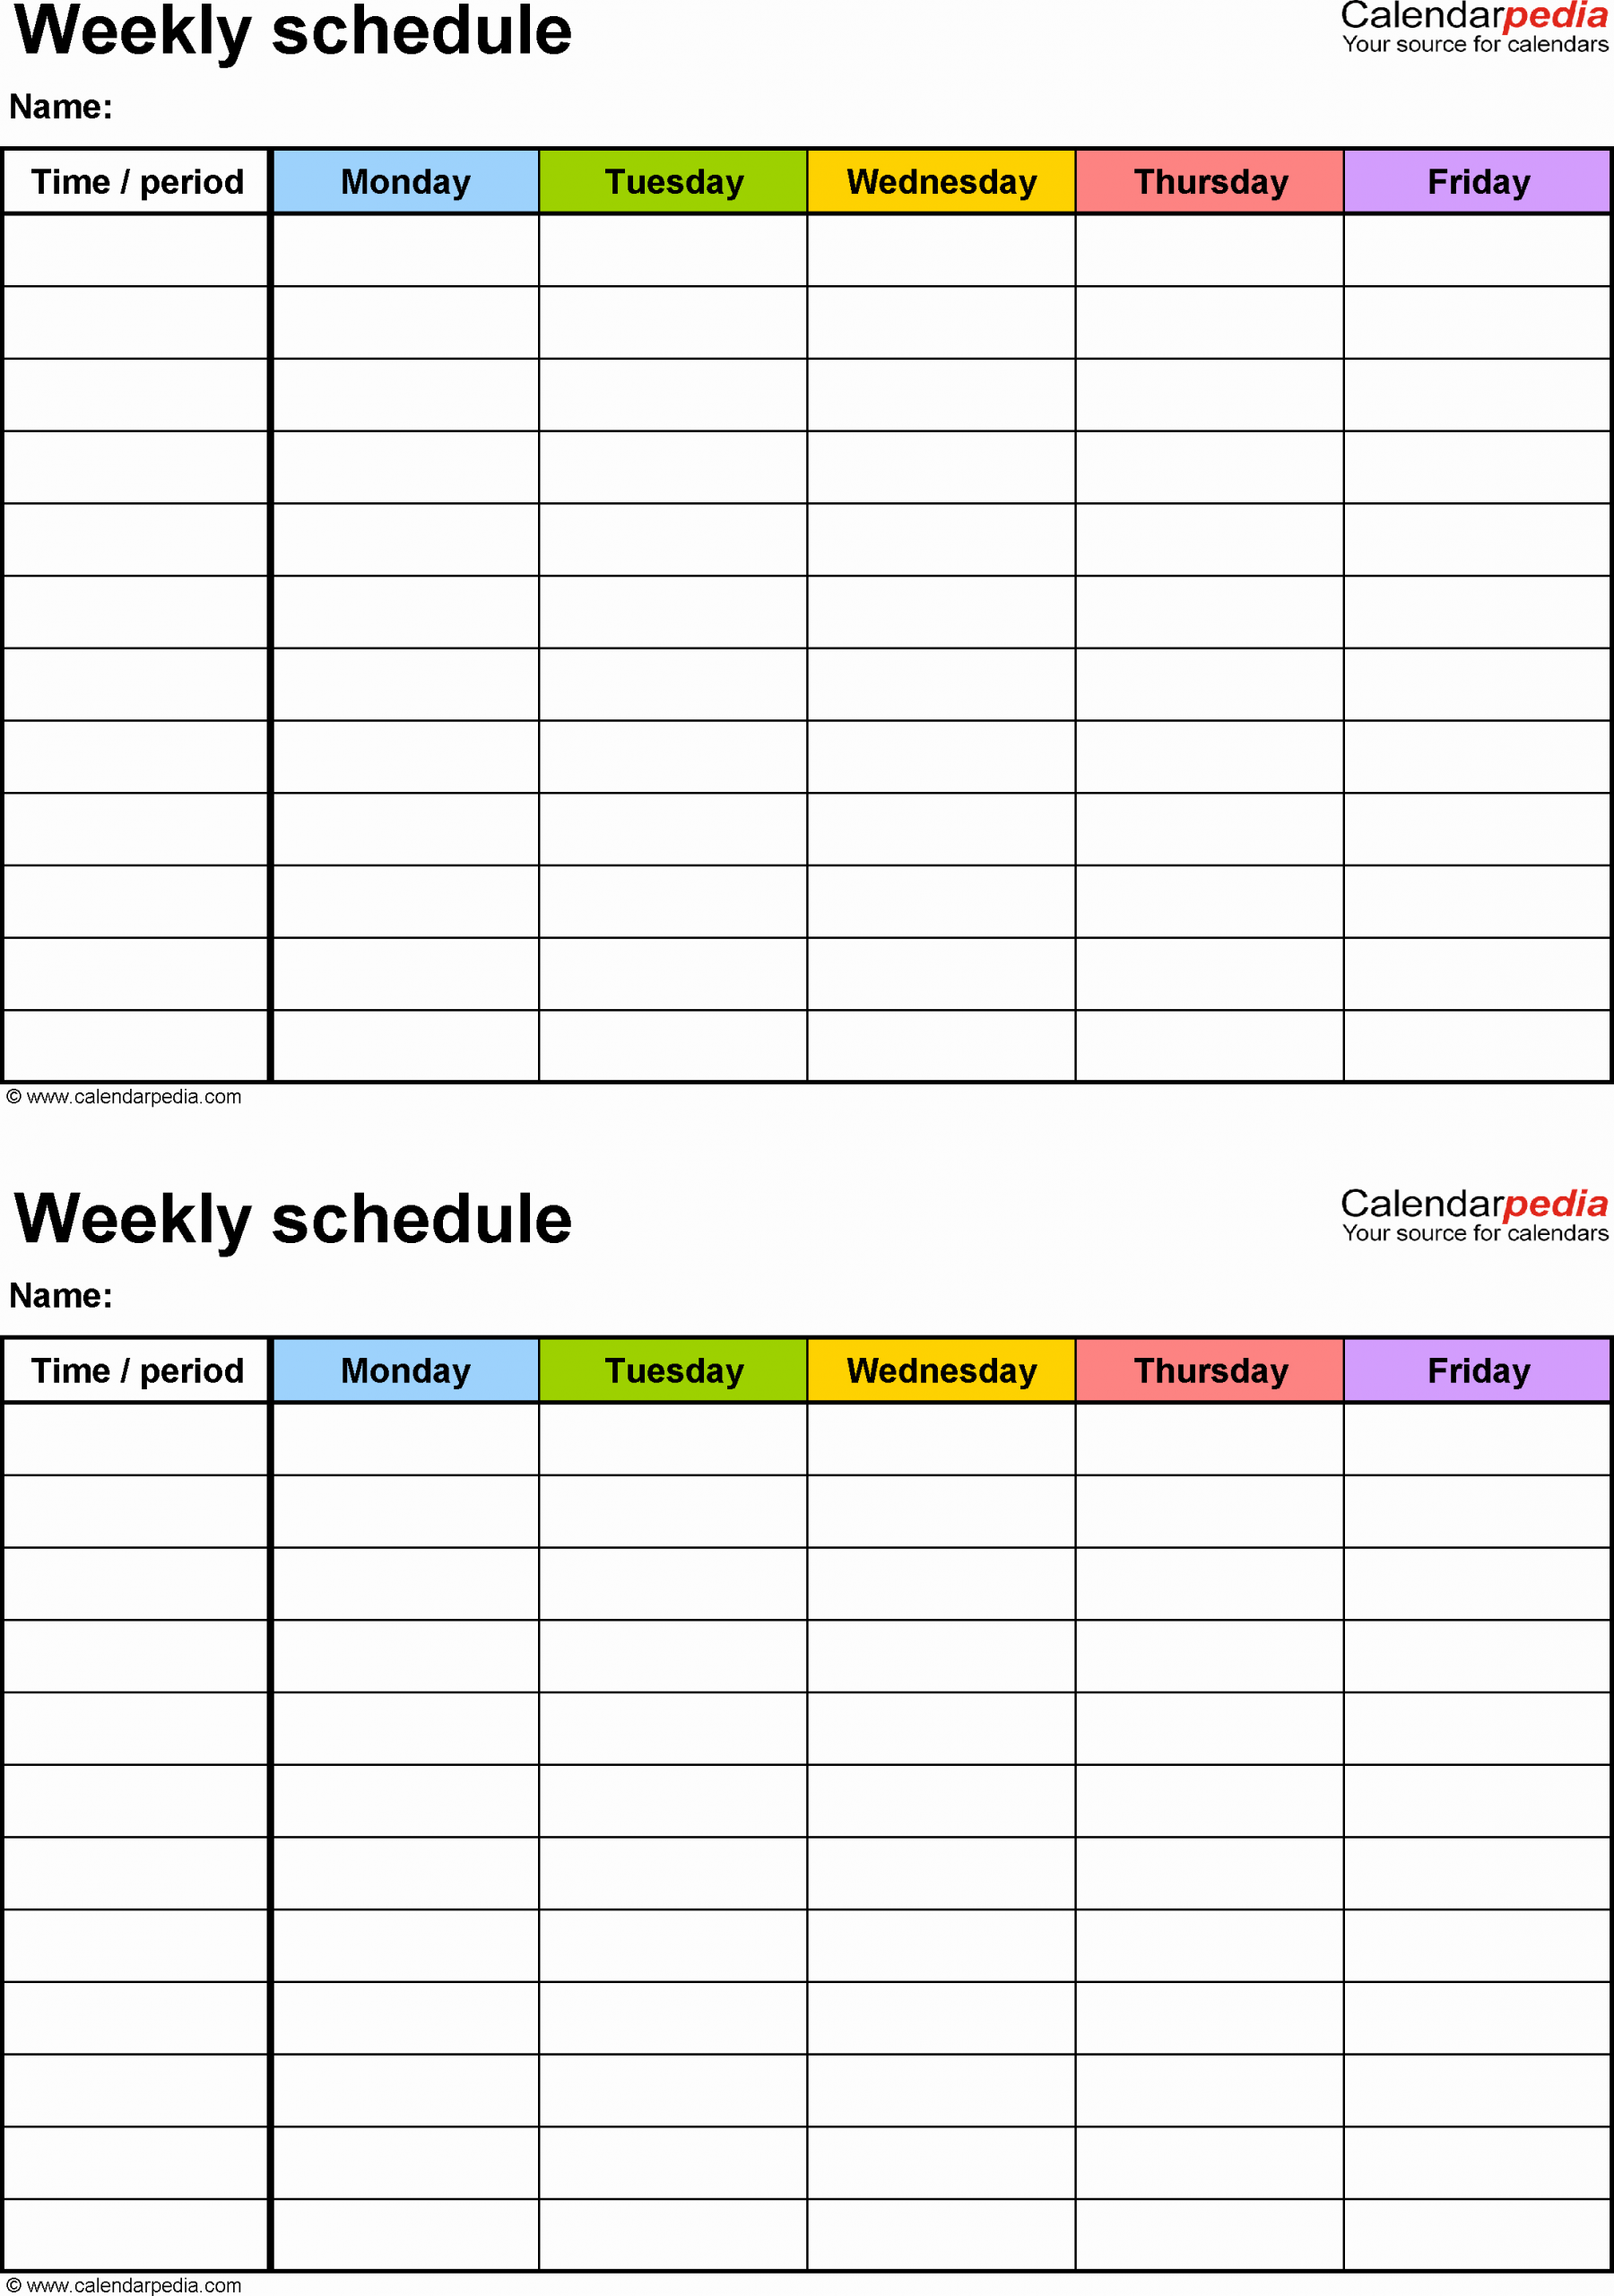 5 Day Schedule Template Lovely Weekly Schedule Template for Pdf Version 3 2 Schedules On